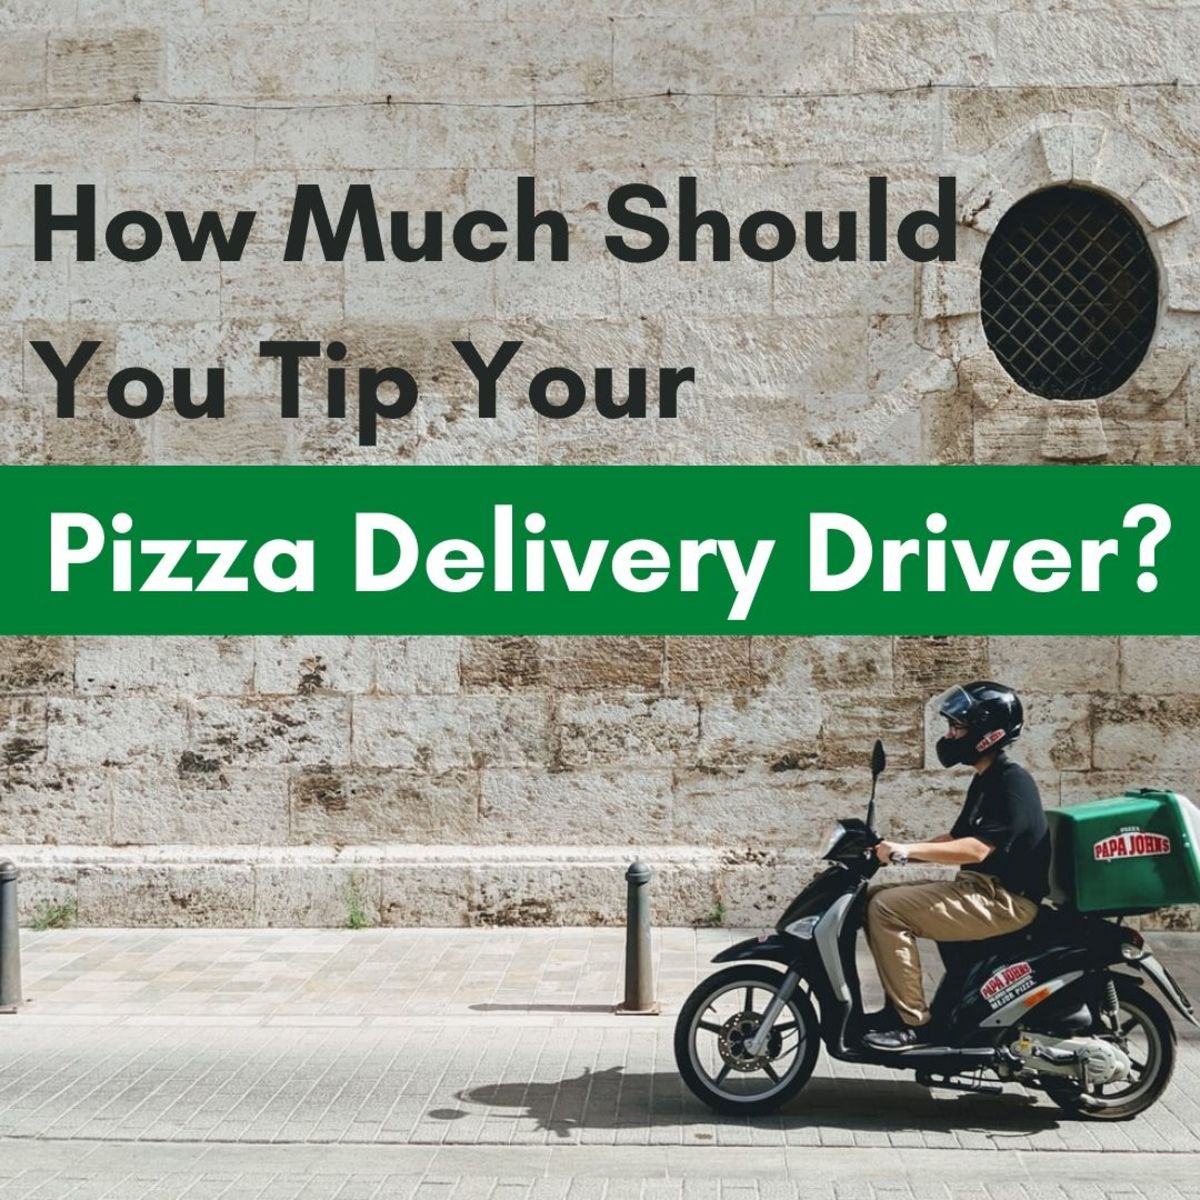 Pizza delivery drivers have a thankless (and sometimes dangerous) job. Be sure to tip them well.